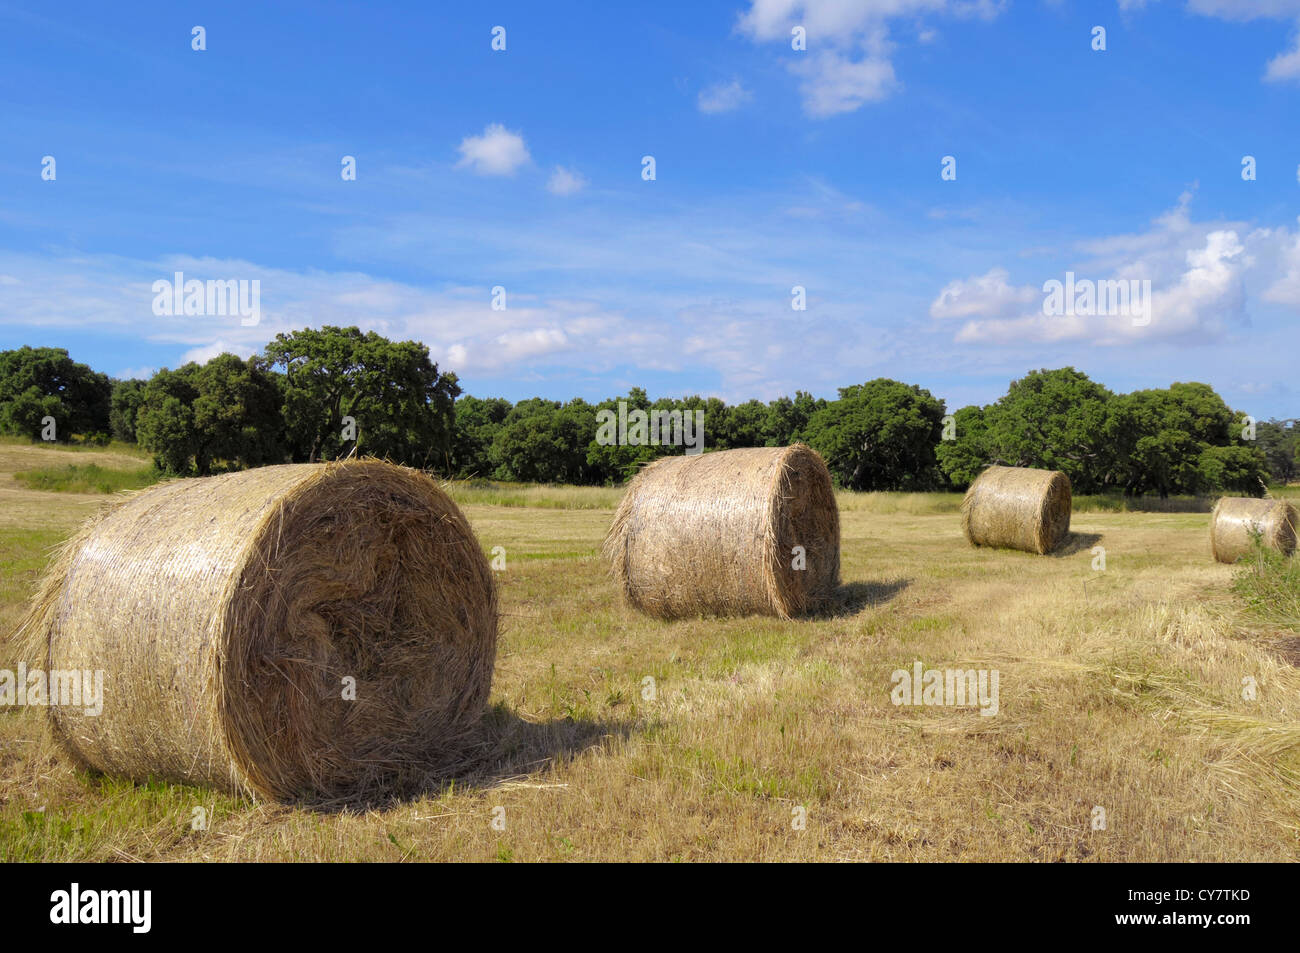 Freshly cut field with hay bails - Stock Image